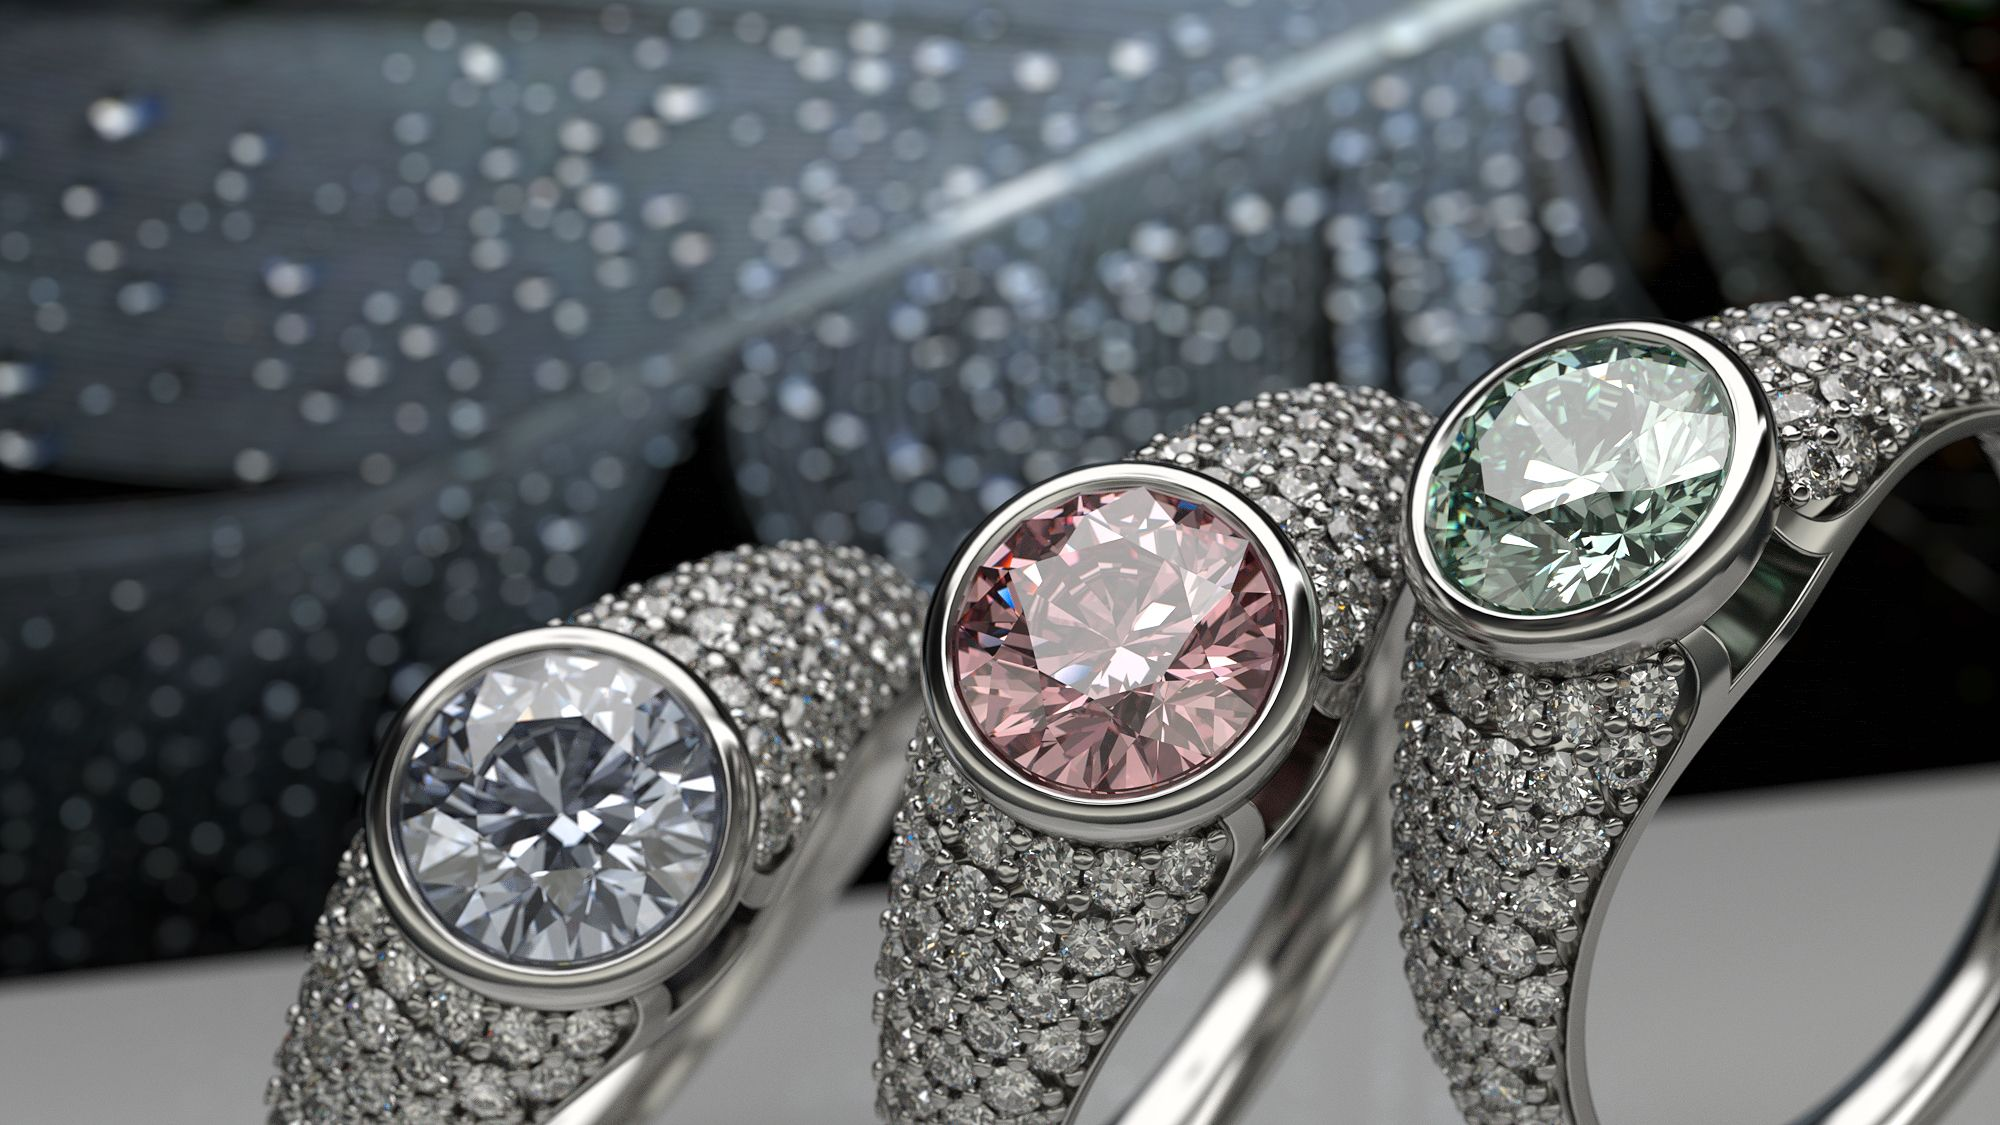 Web banner created by Jewelive for marketing diamond jewelry | Online  jewelry store, Online jewelry, Diamond